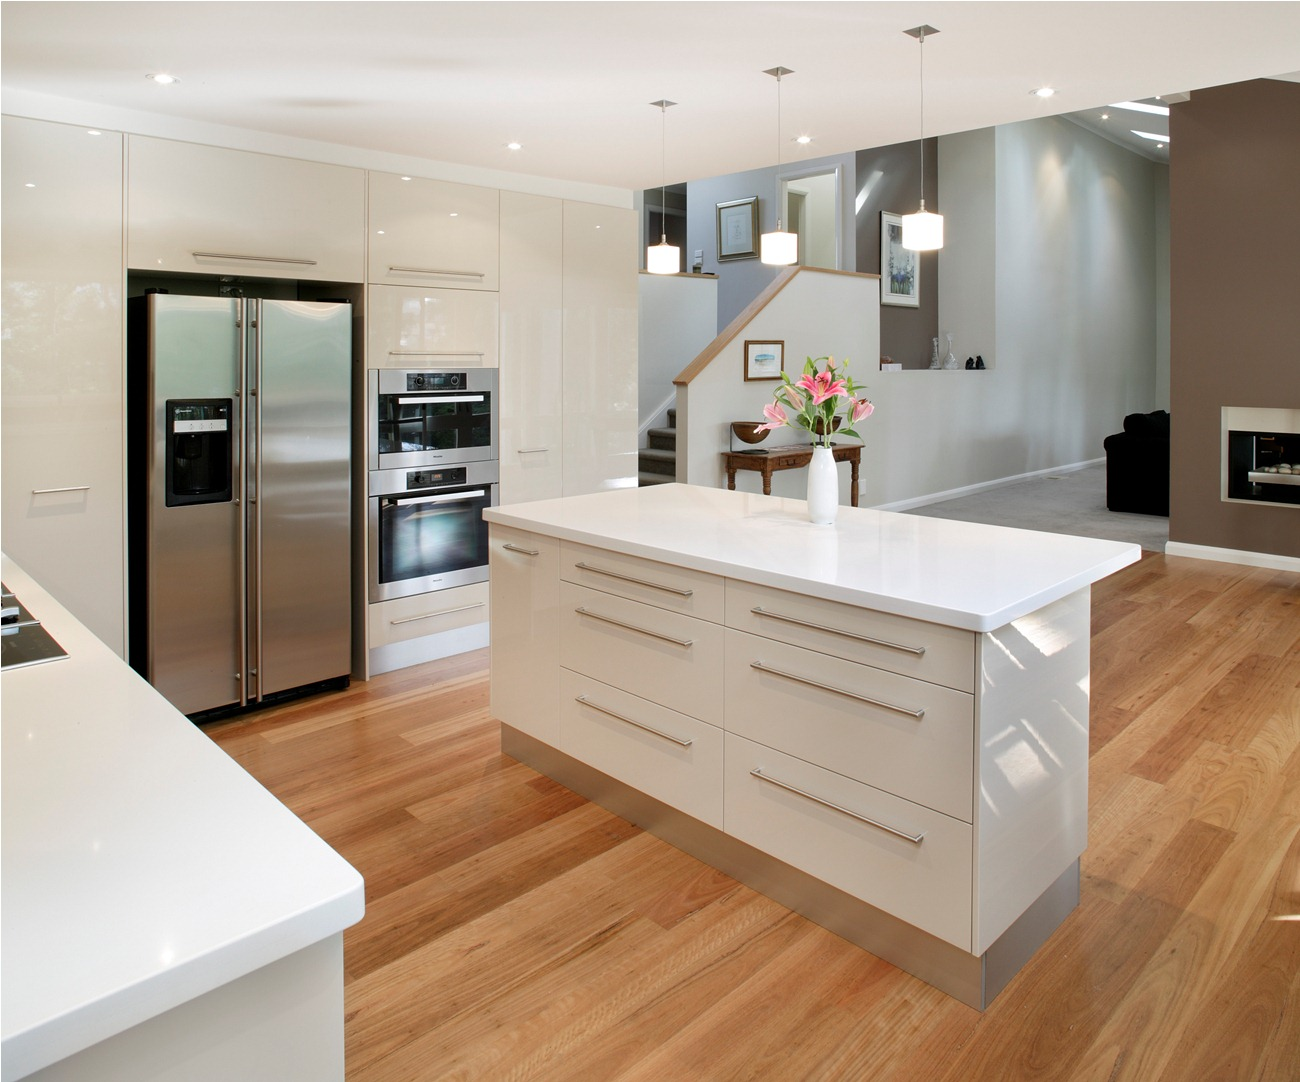 Beyond kitchens kitchen cupboards cape town kitchens for Kitchen designs photo gallery